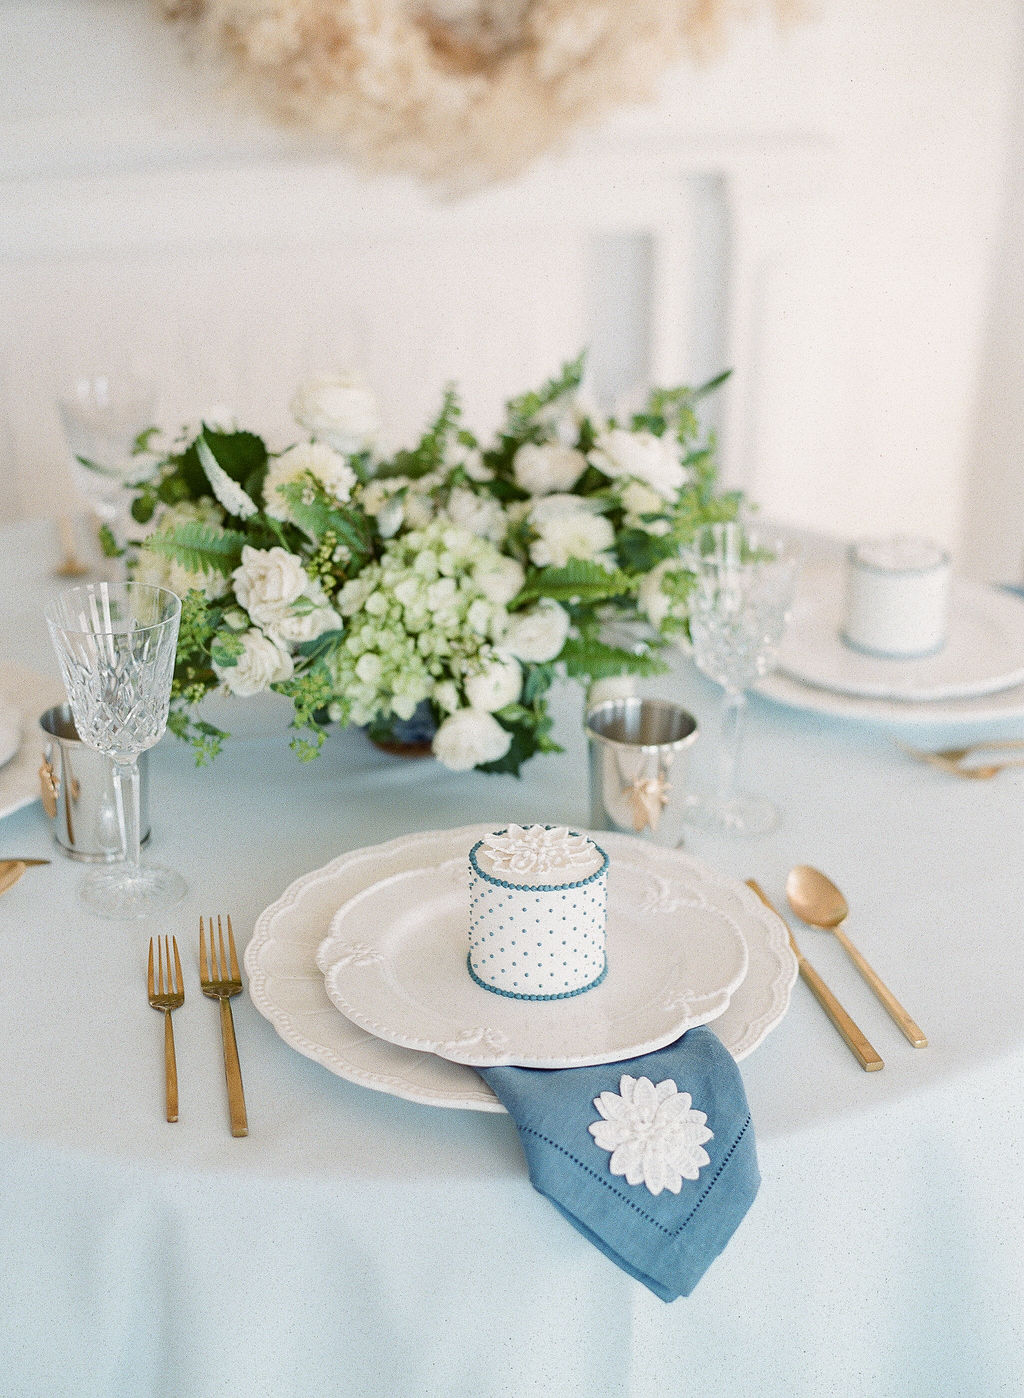 Events by Reagan, Lela Rose Collaboration, Personal Cake, Table top, Embroidered Napkin, Bridal Luncheon, Spring Table